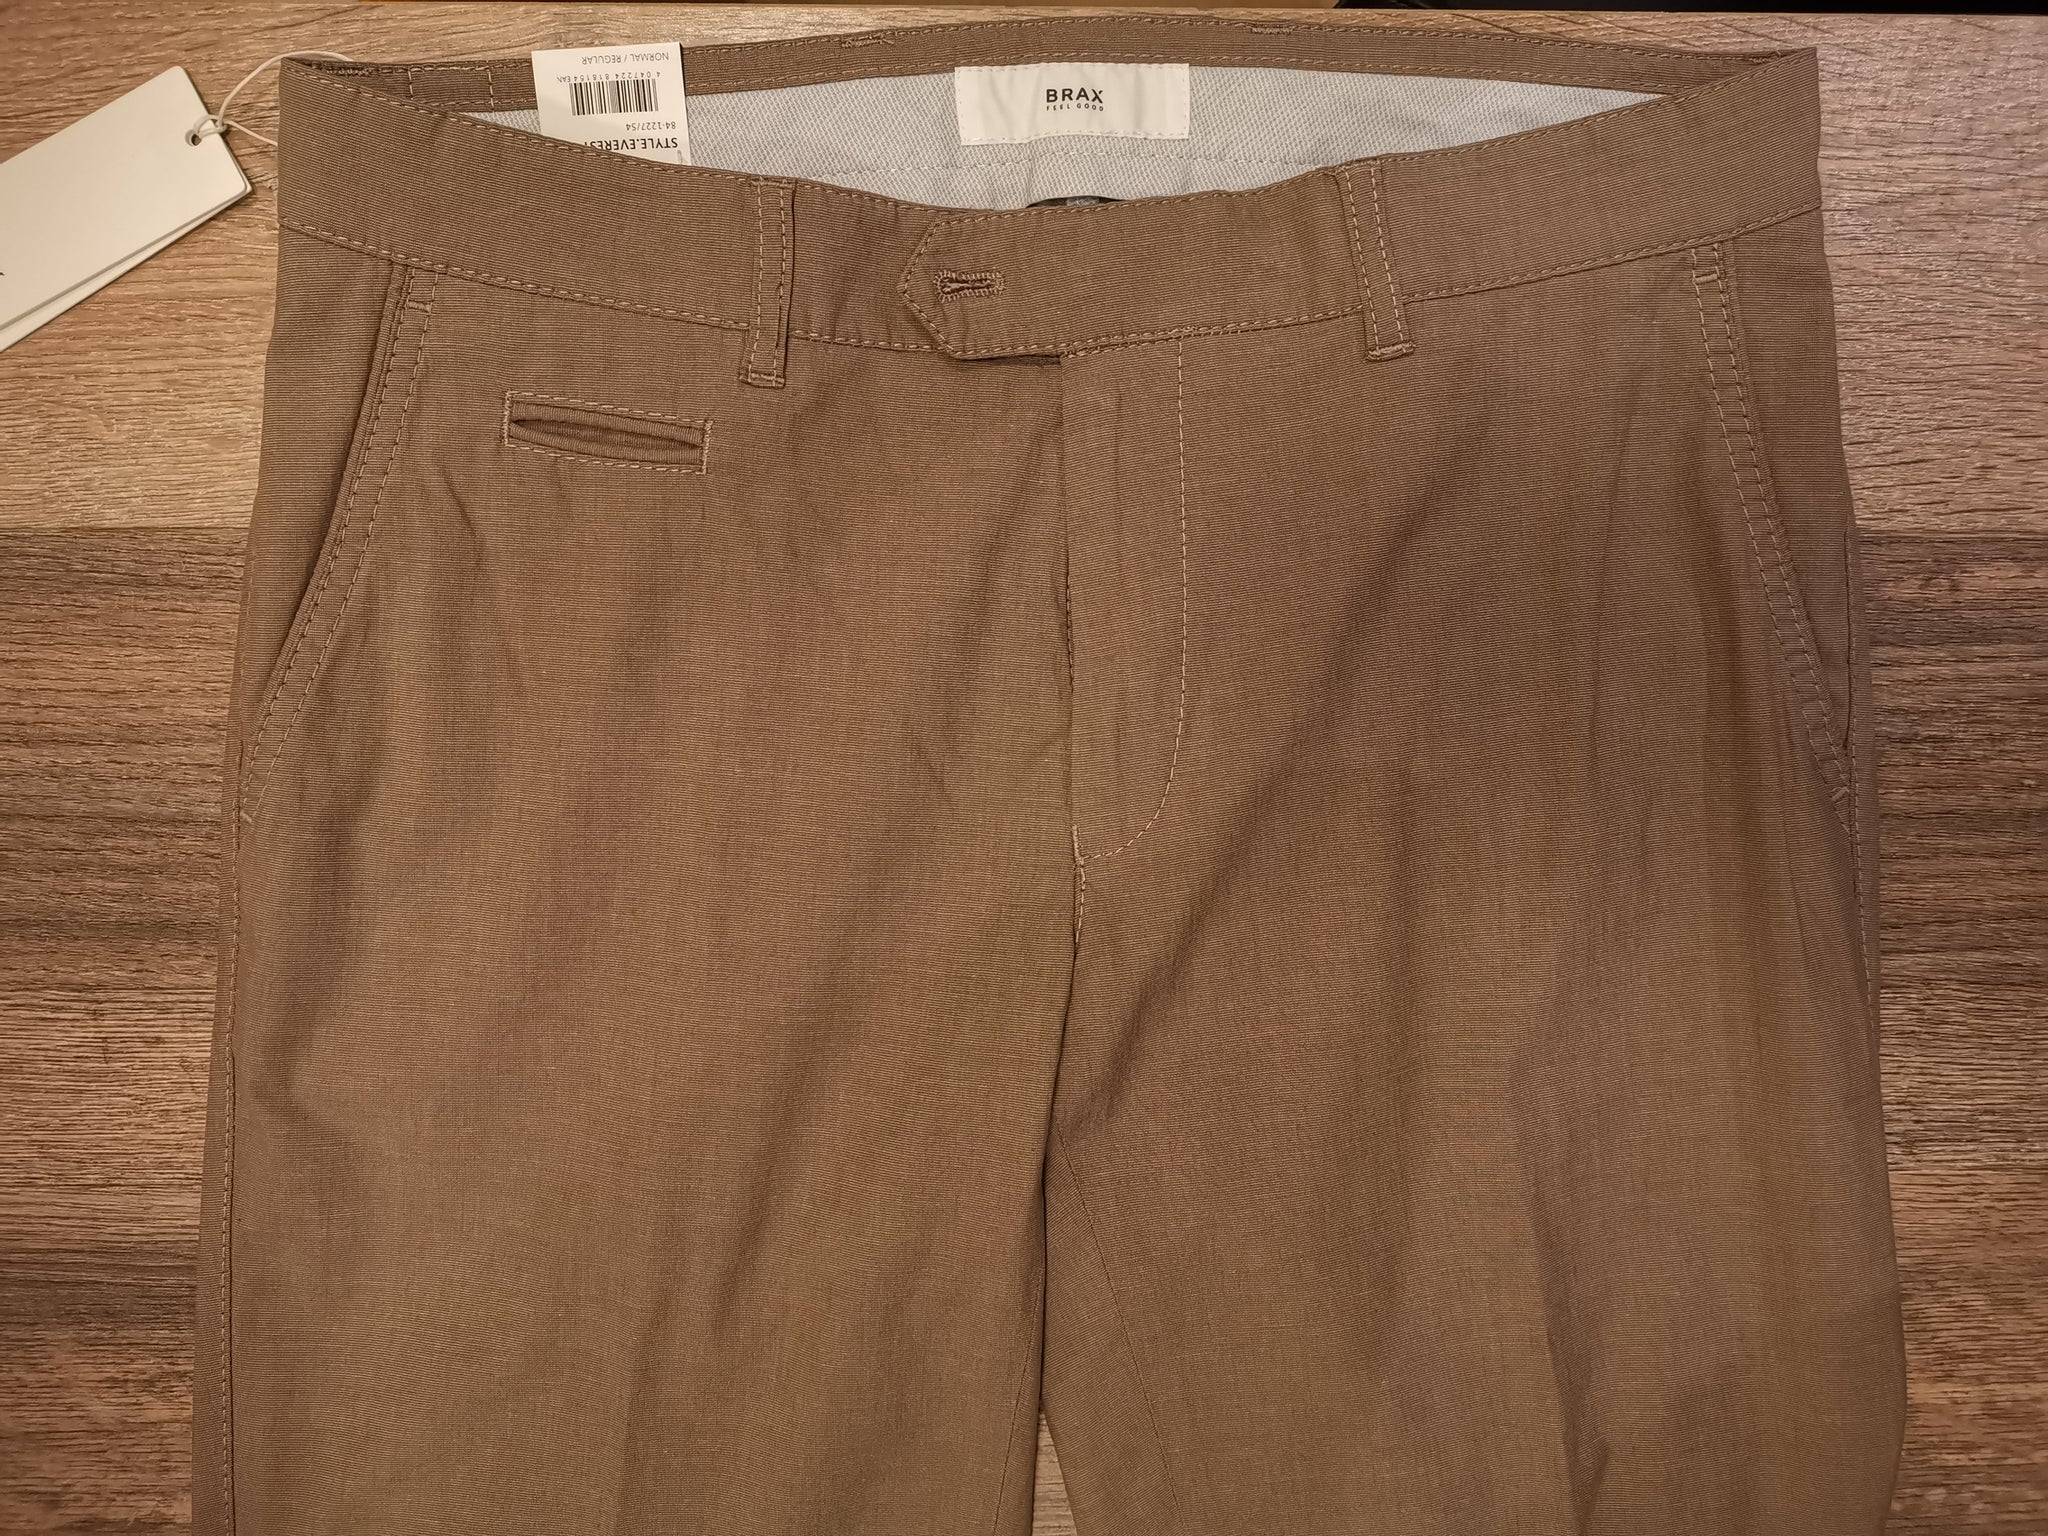 Brax Everest U Ultralight chinos